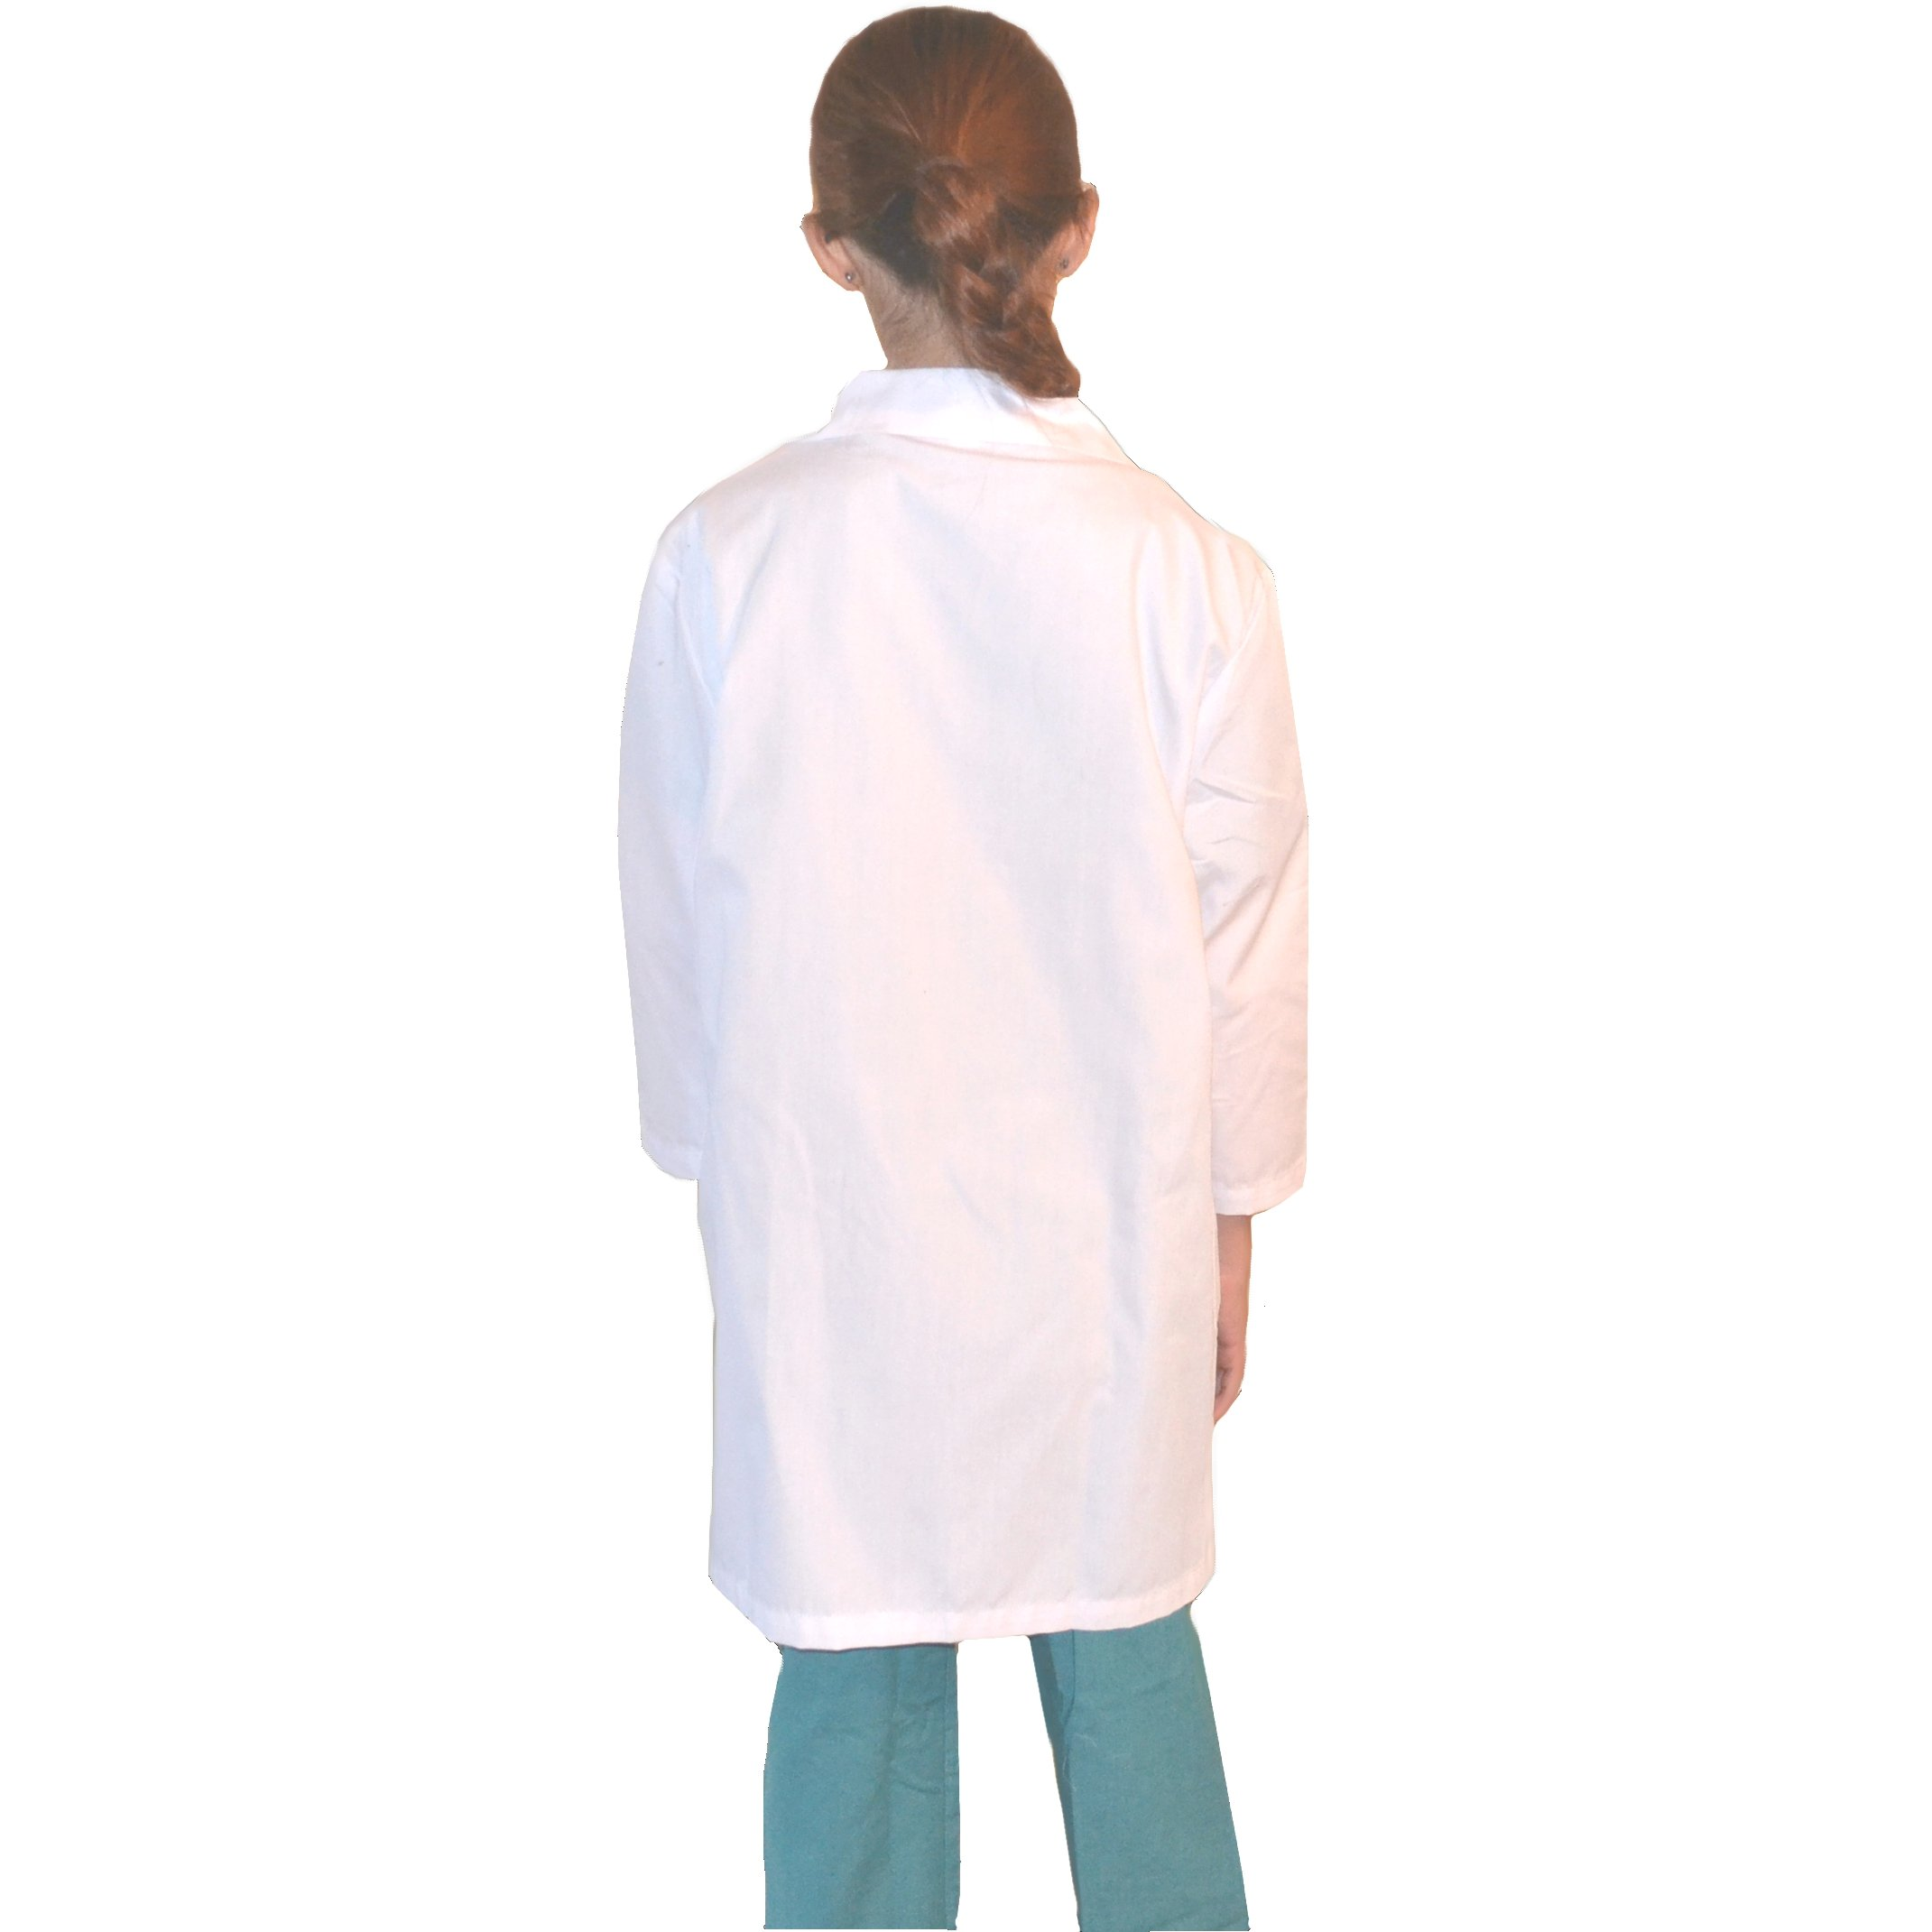 My Little Doc Personalized Kids Lab Coat, Size 7 by My Little Doc (Image #2)